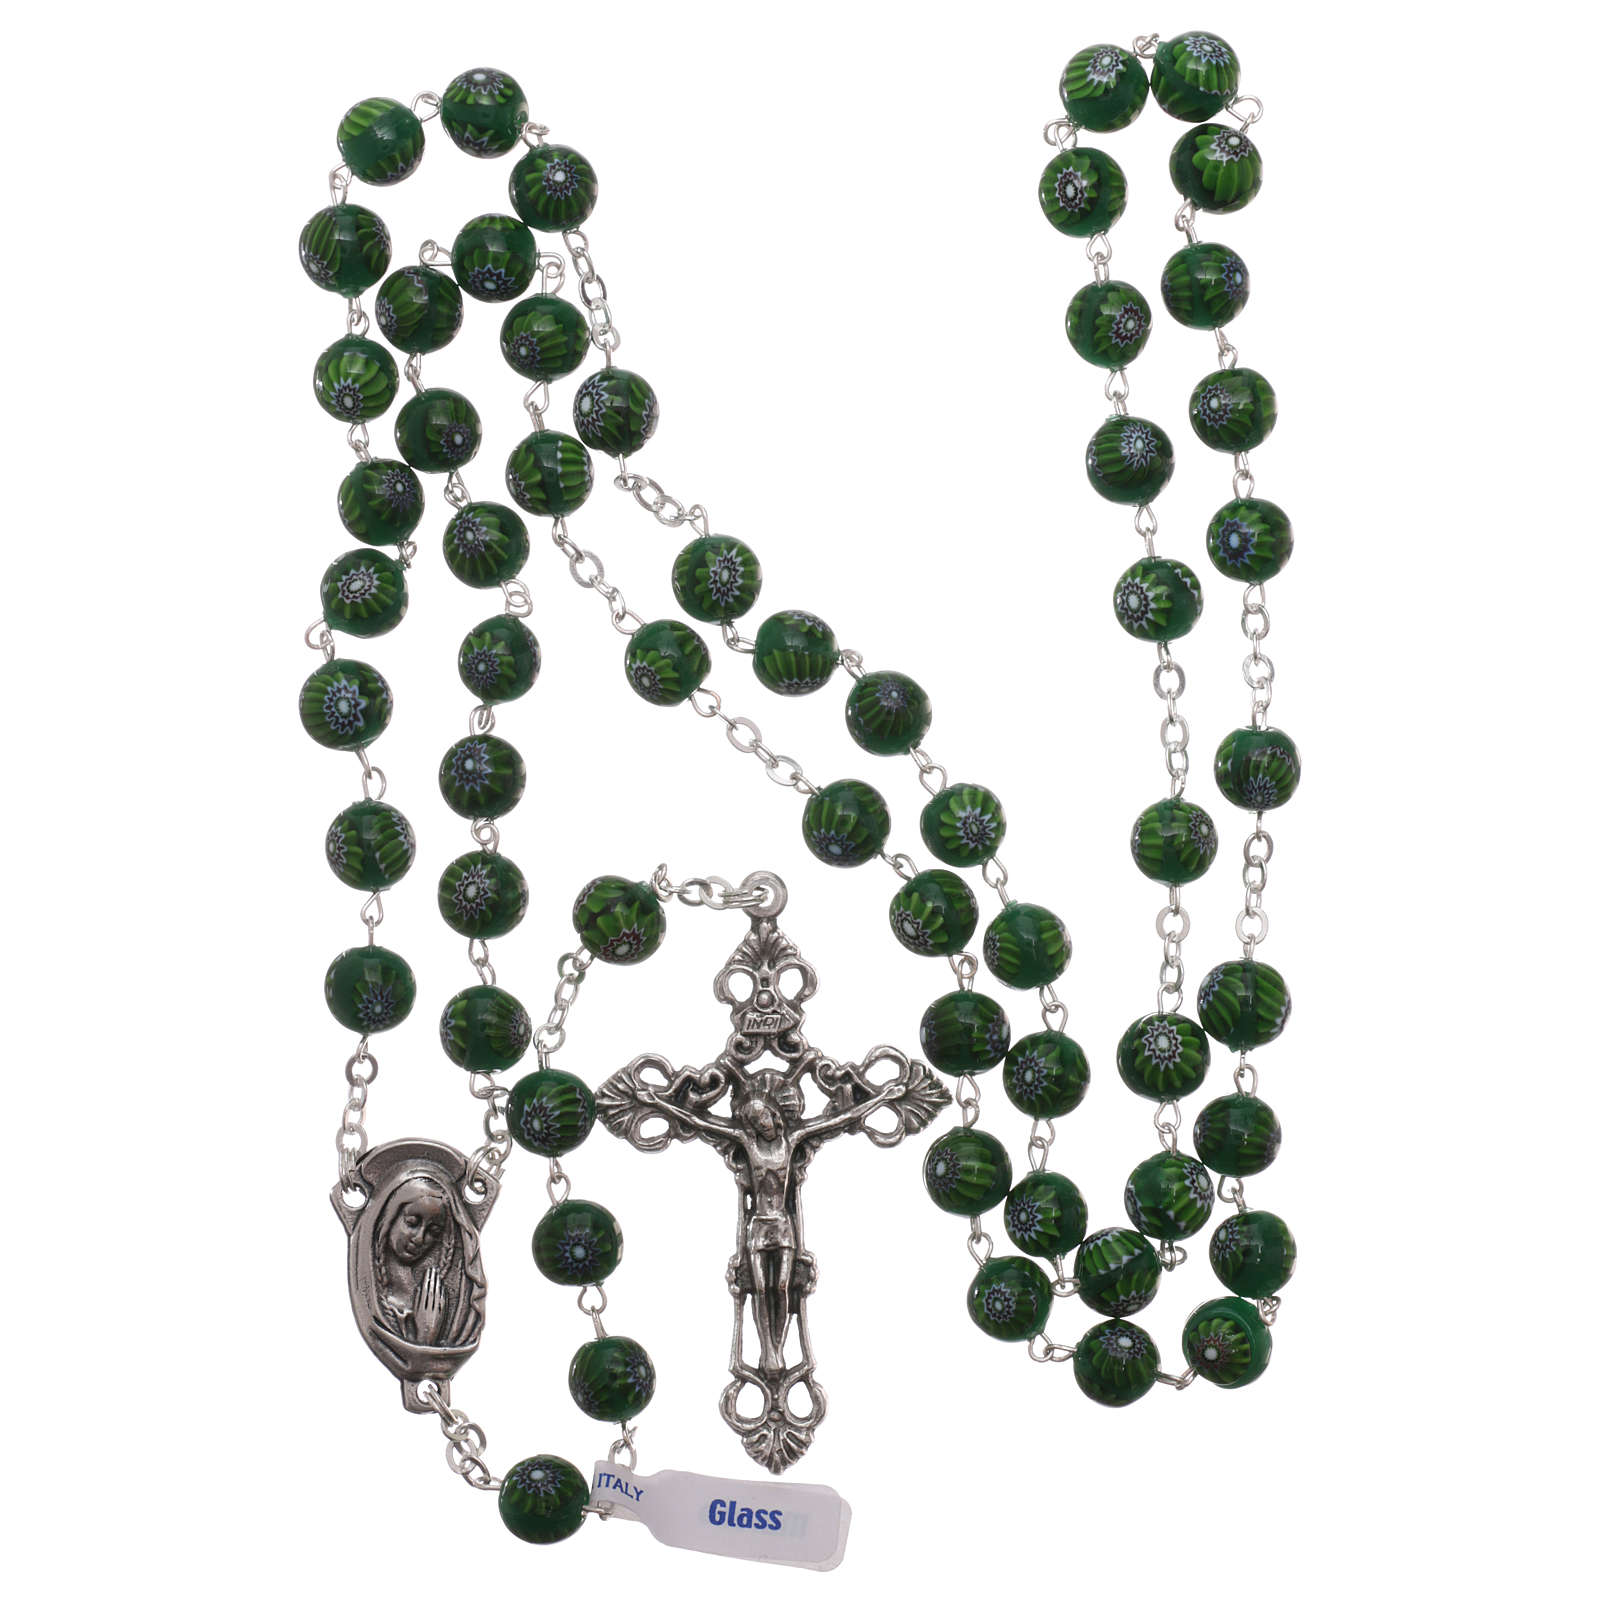 Green Murano glass style rosary beads with floral decorations, 8mm 4